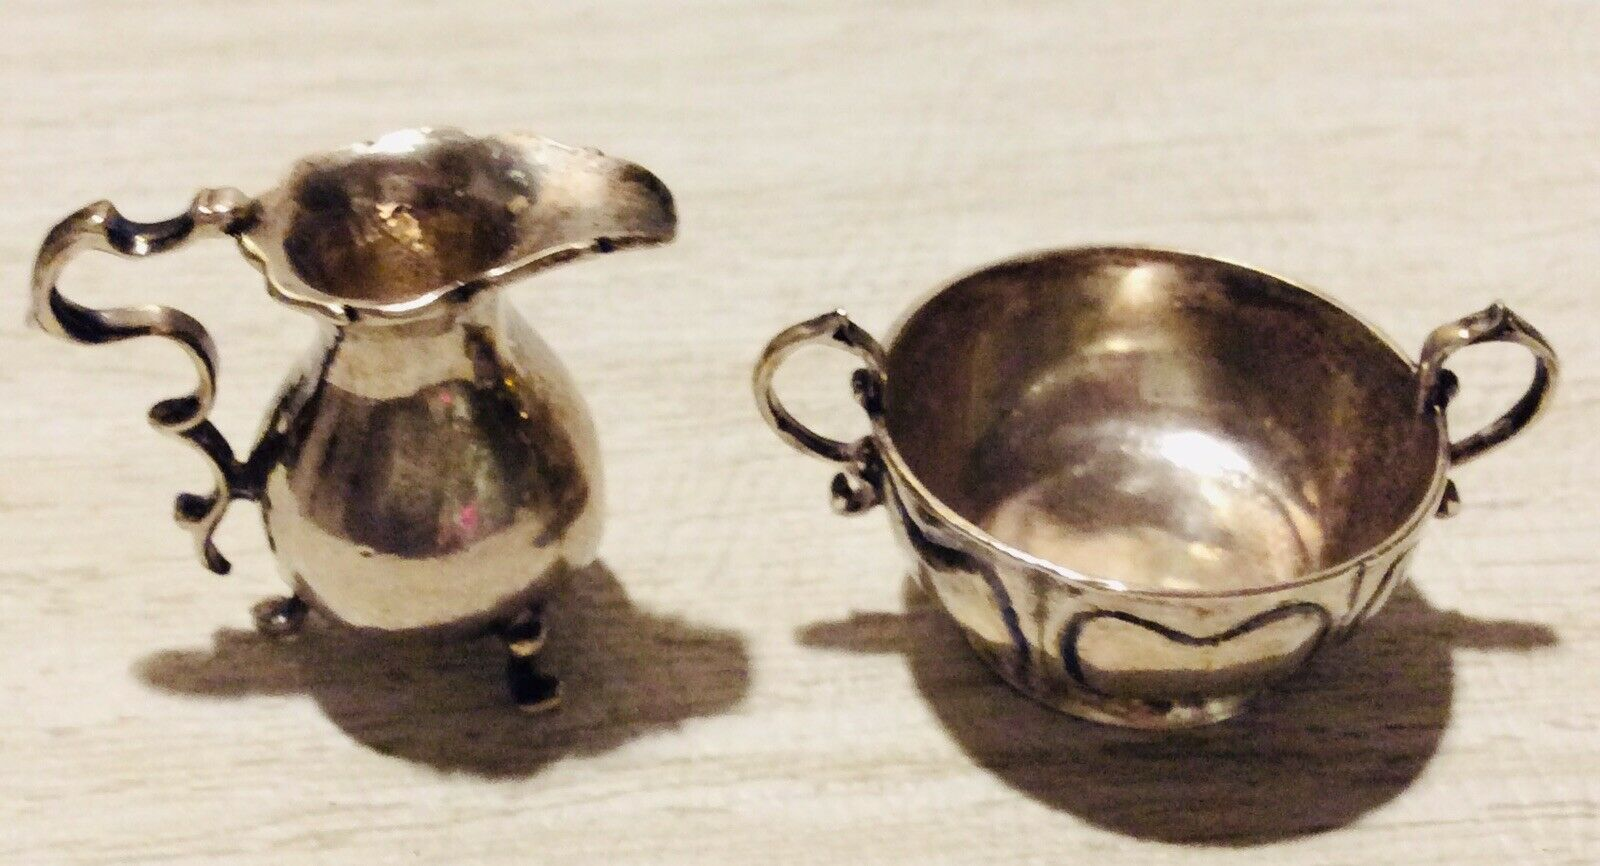 Jahr, Miniature Sterling Pitcher And Cup Dollhaus, M M A